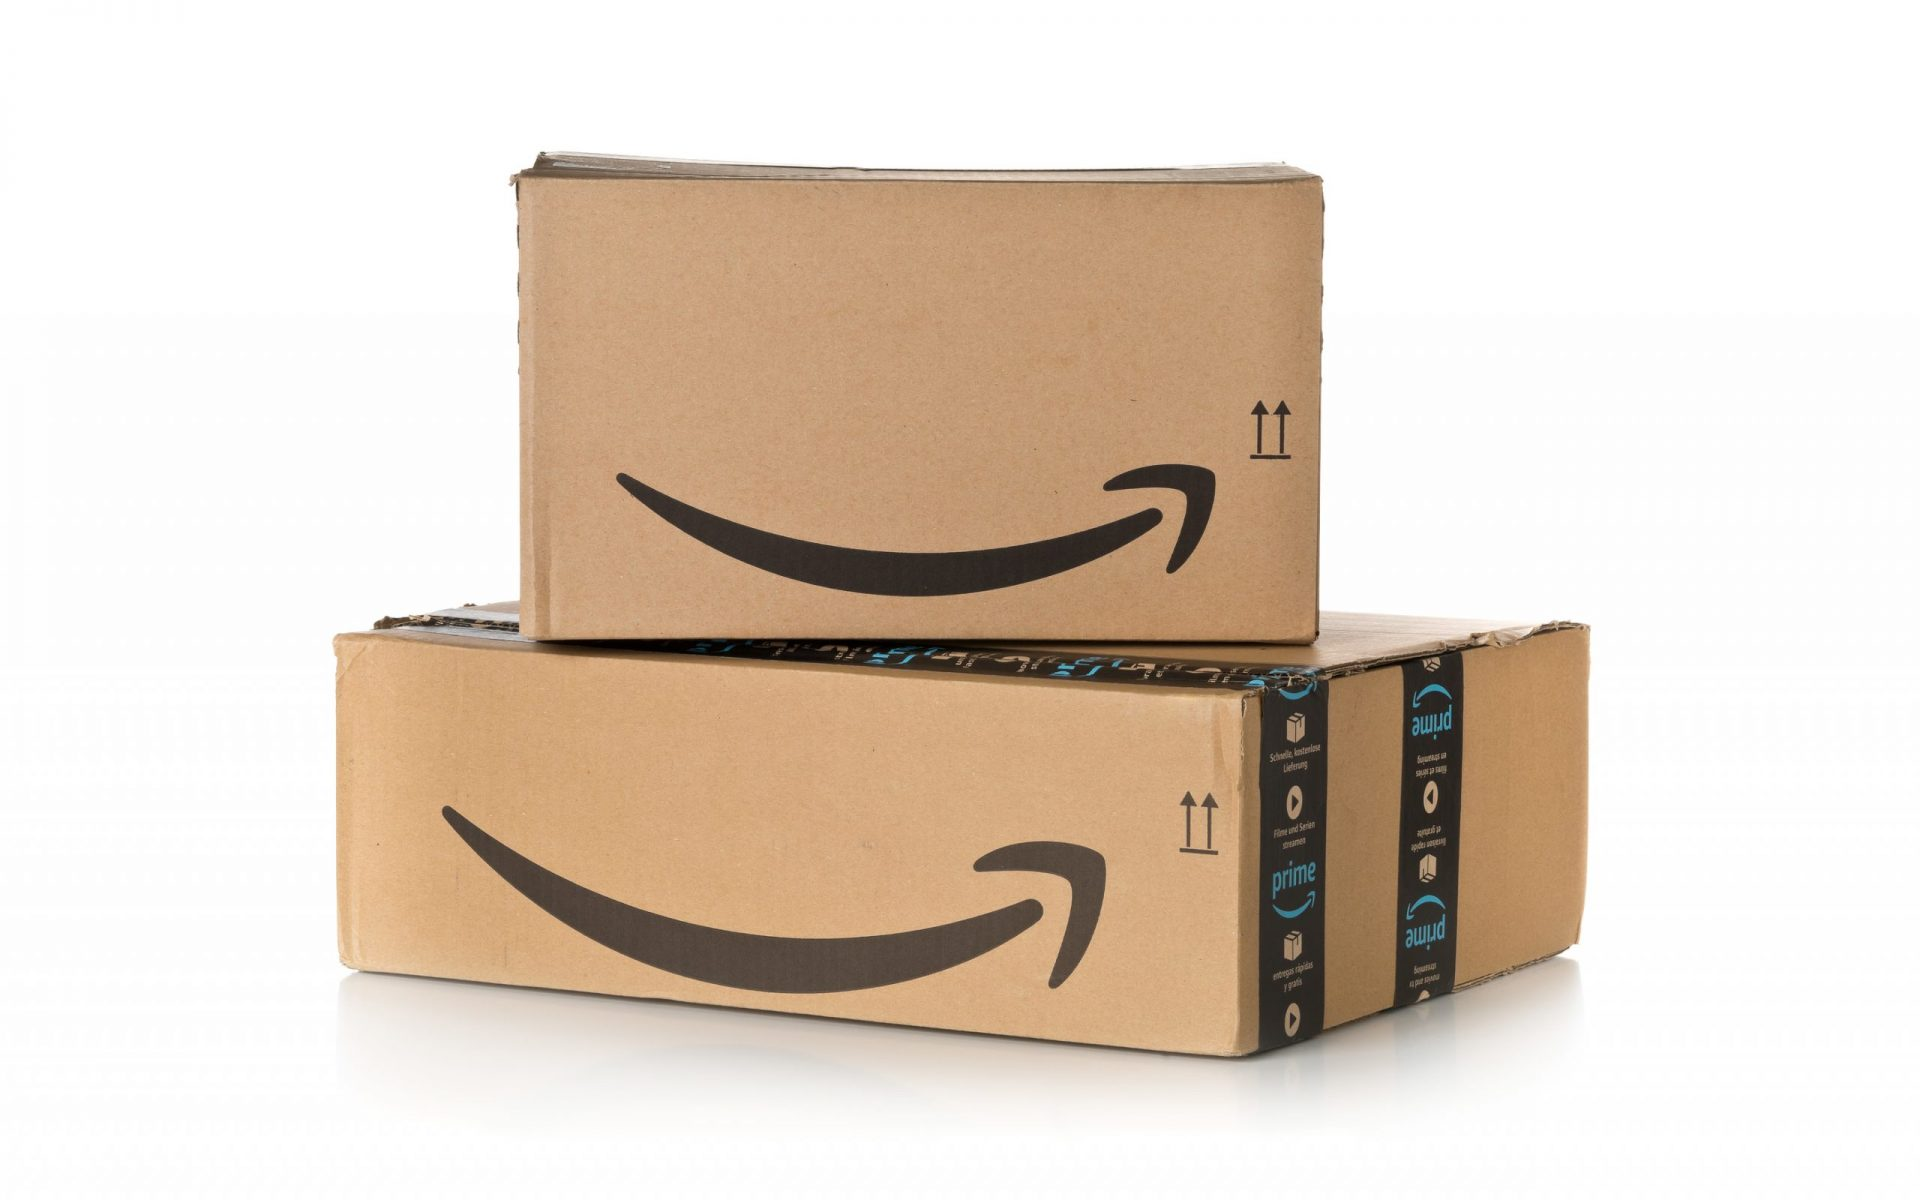 Amazon Boxes with a Smile